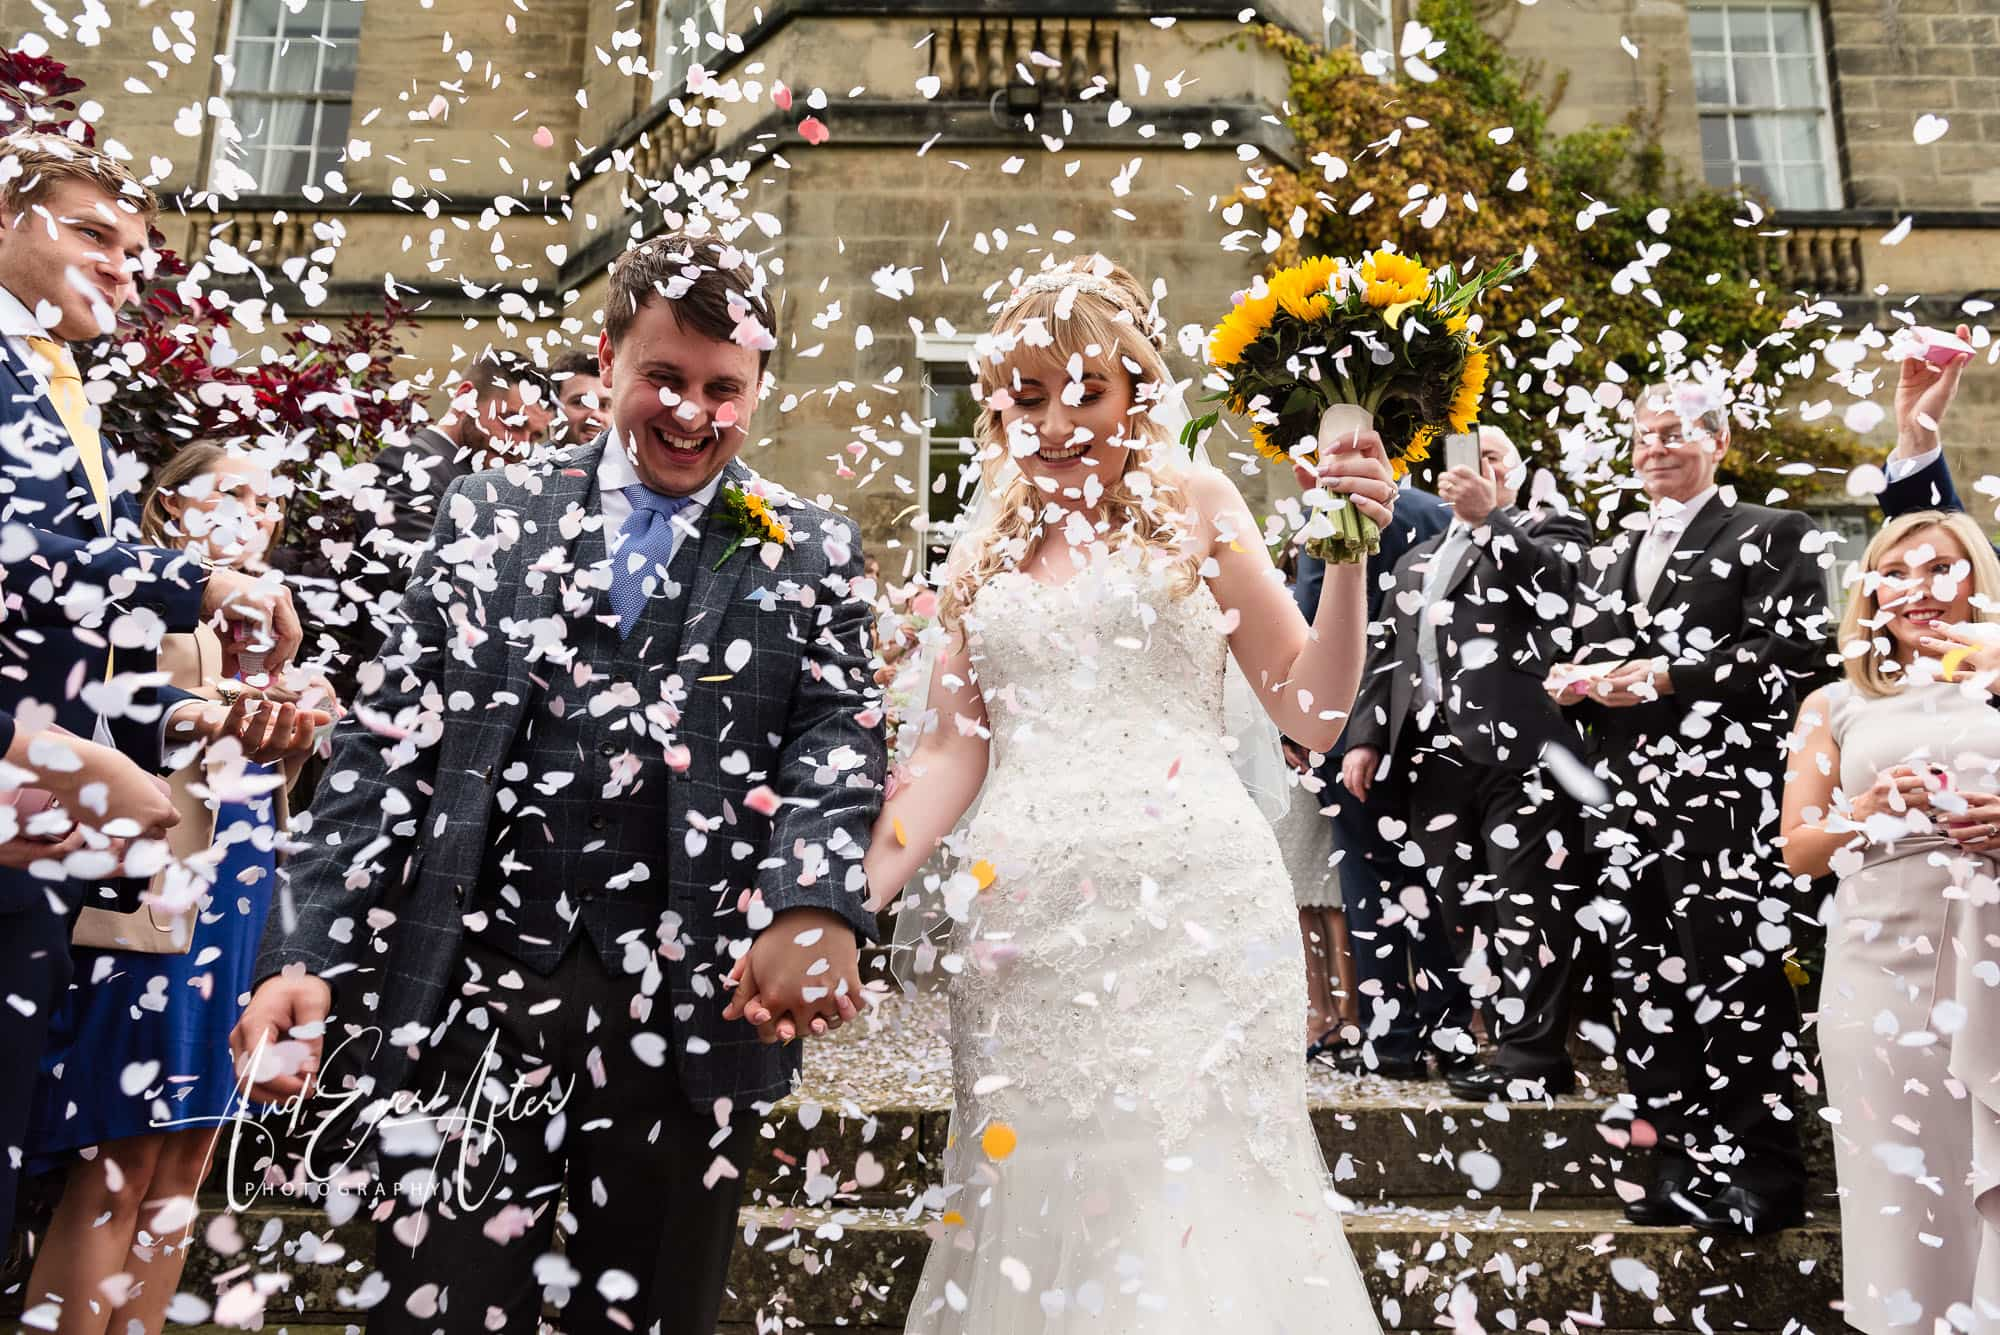 Middelton Lodge Wedding Photography, And Ever after Photography, confetti